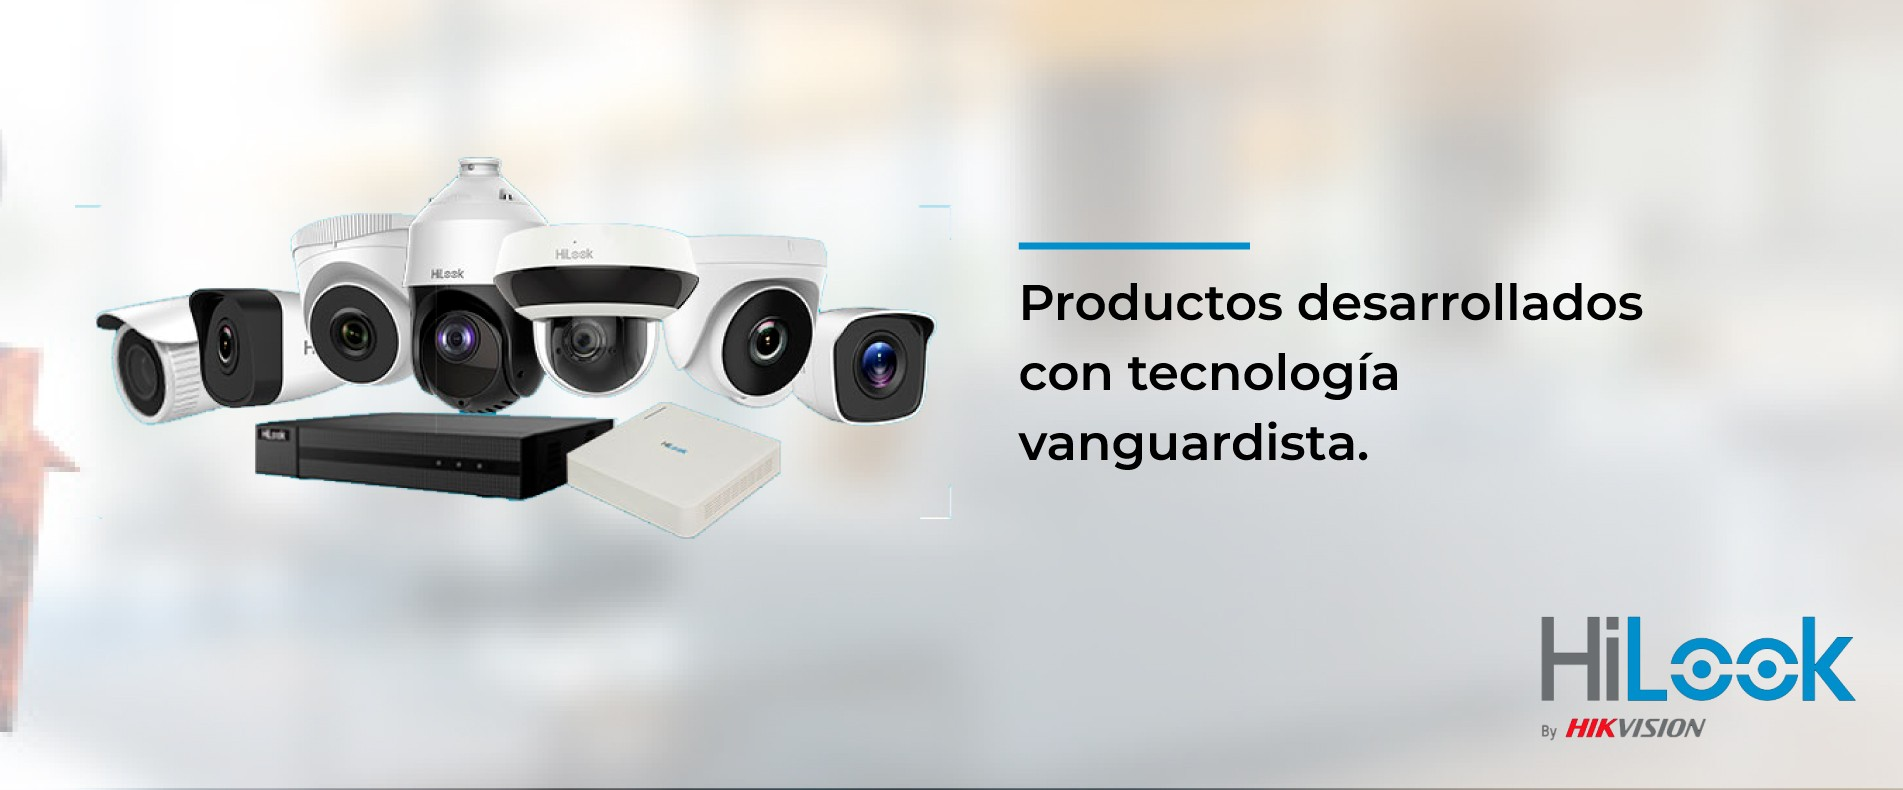 Hilook by Hikvision CCTV